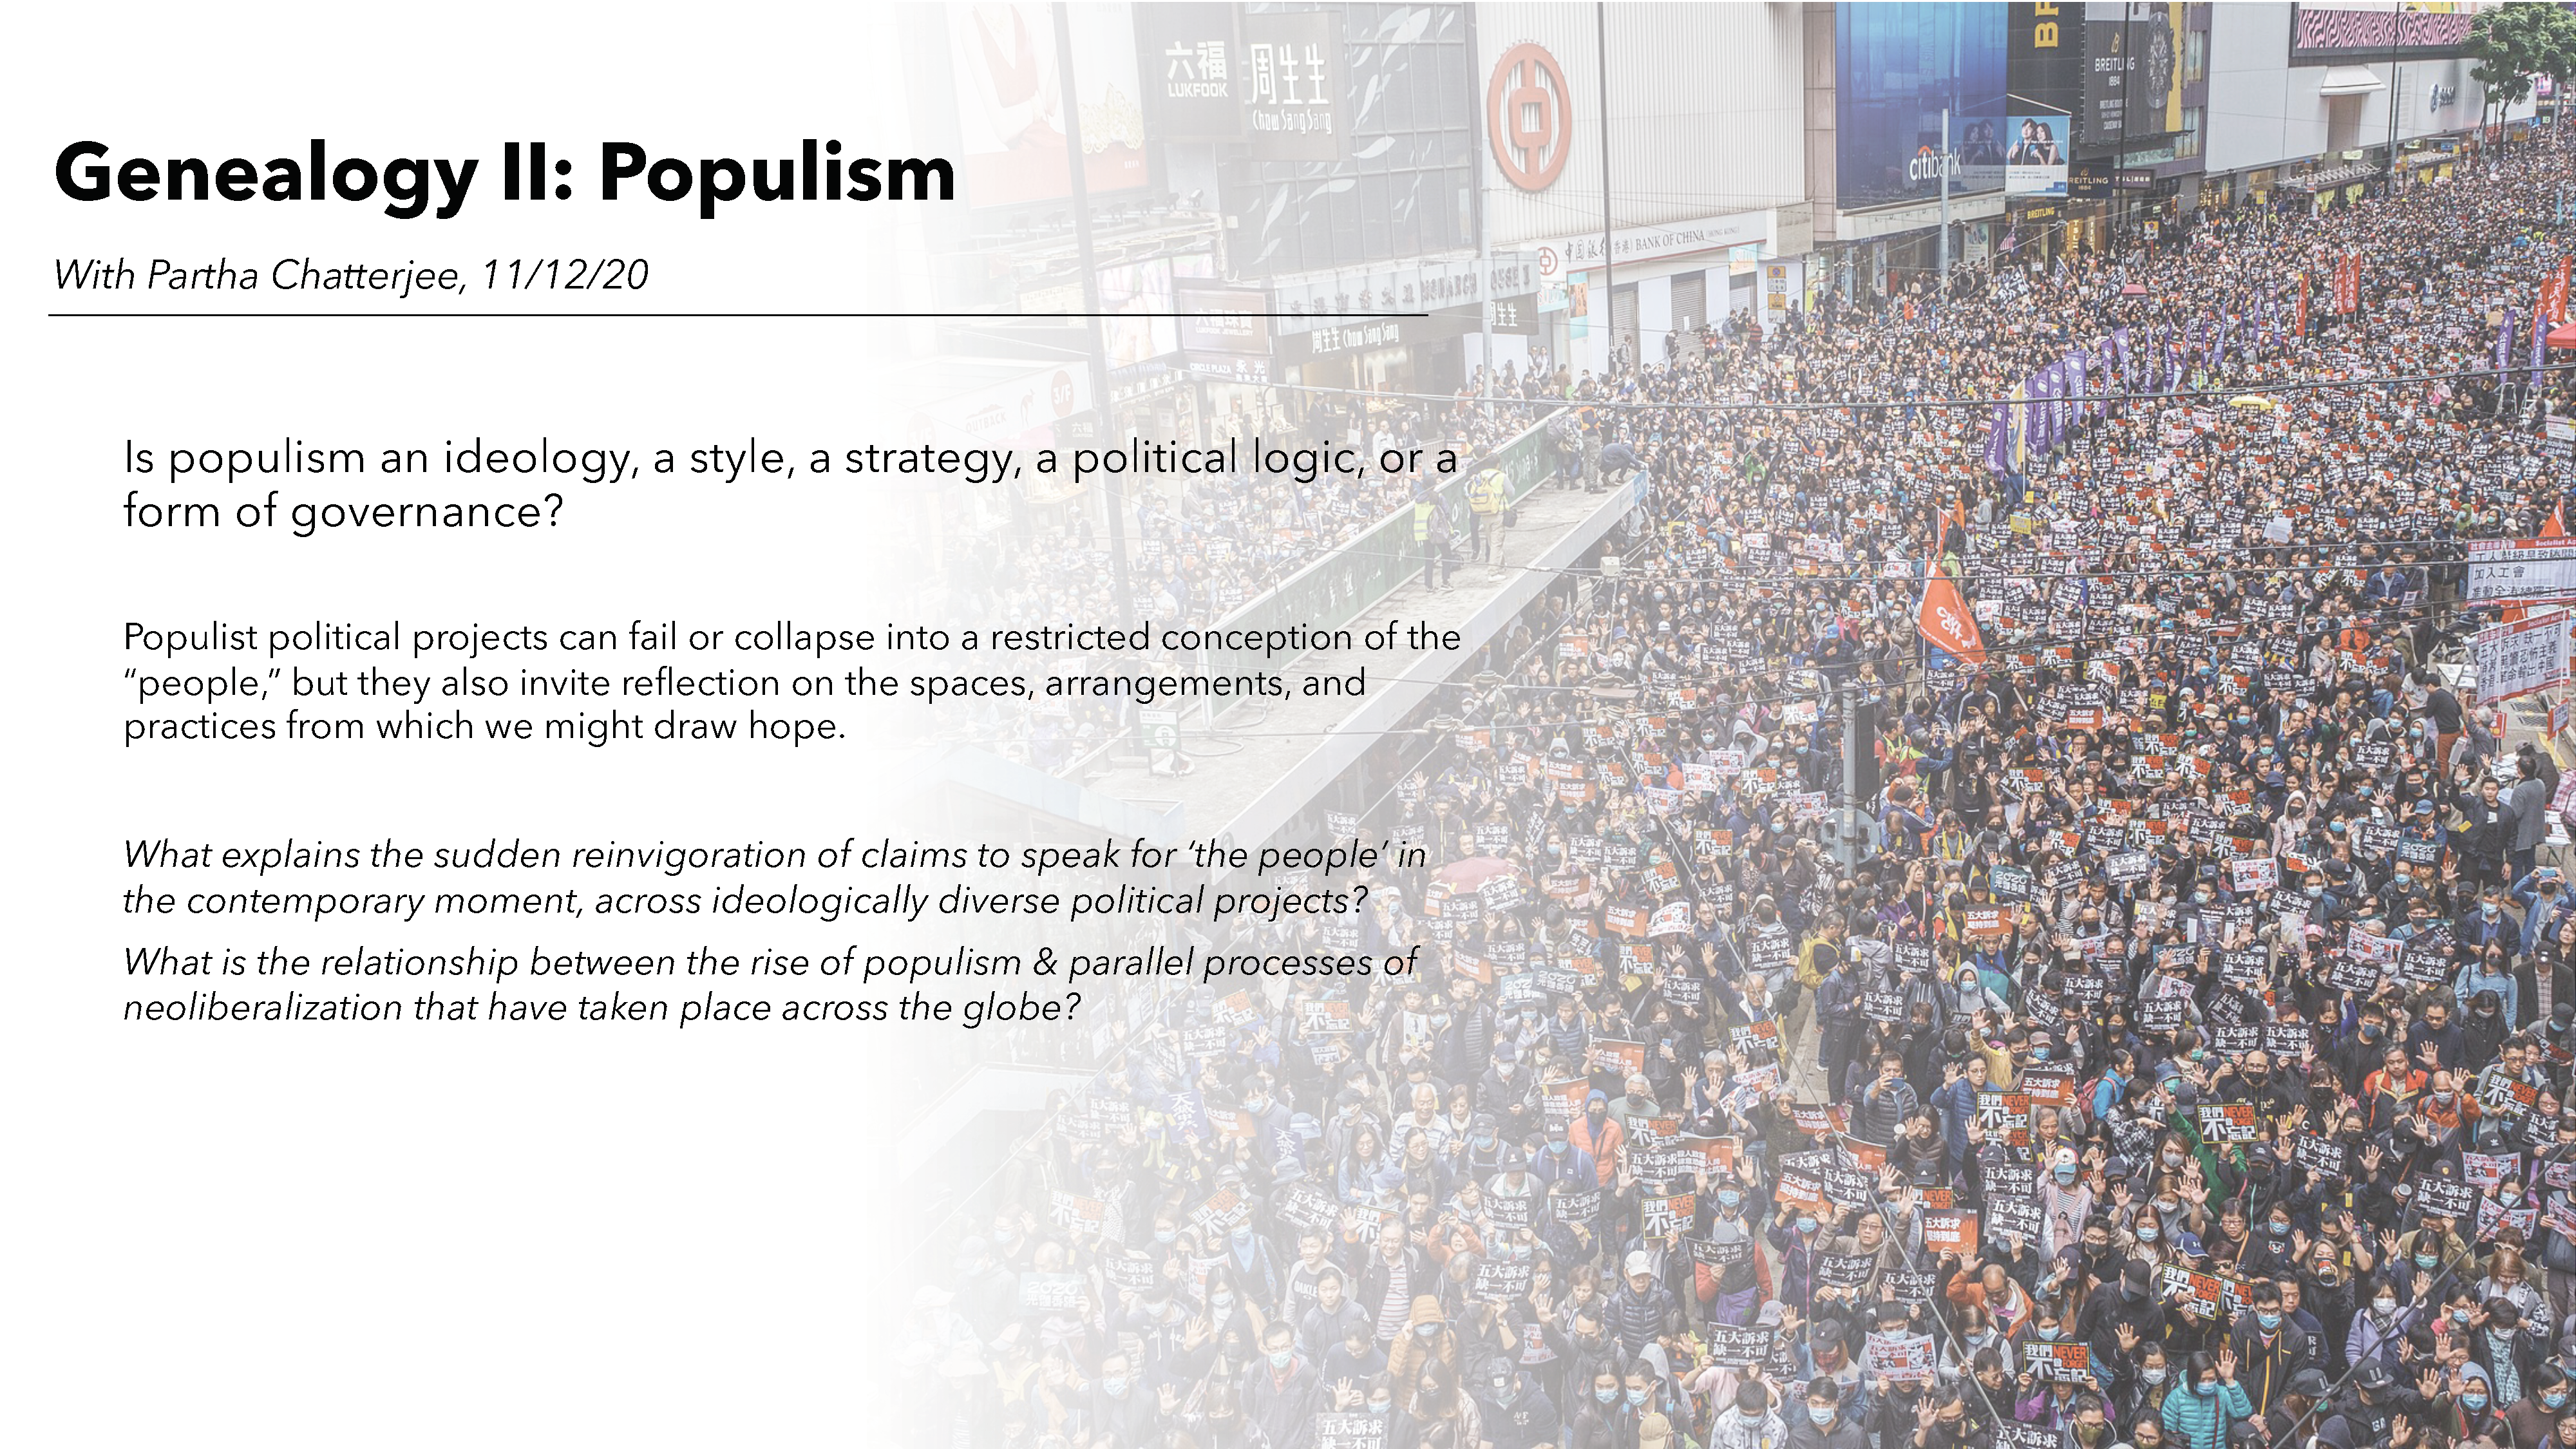 A short description of the Genealogy II: Populism theme in the University of Arizona Sawyer Seminar on Neoliberalism at the Neopopulist Crossroads, against a background image of the Hong Kong Umbrella Protests.